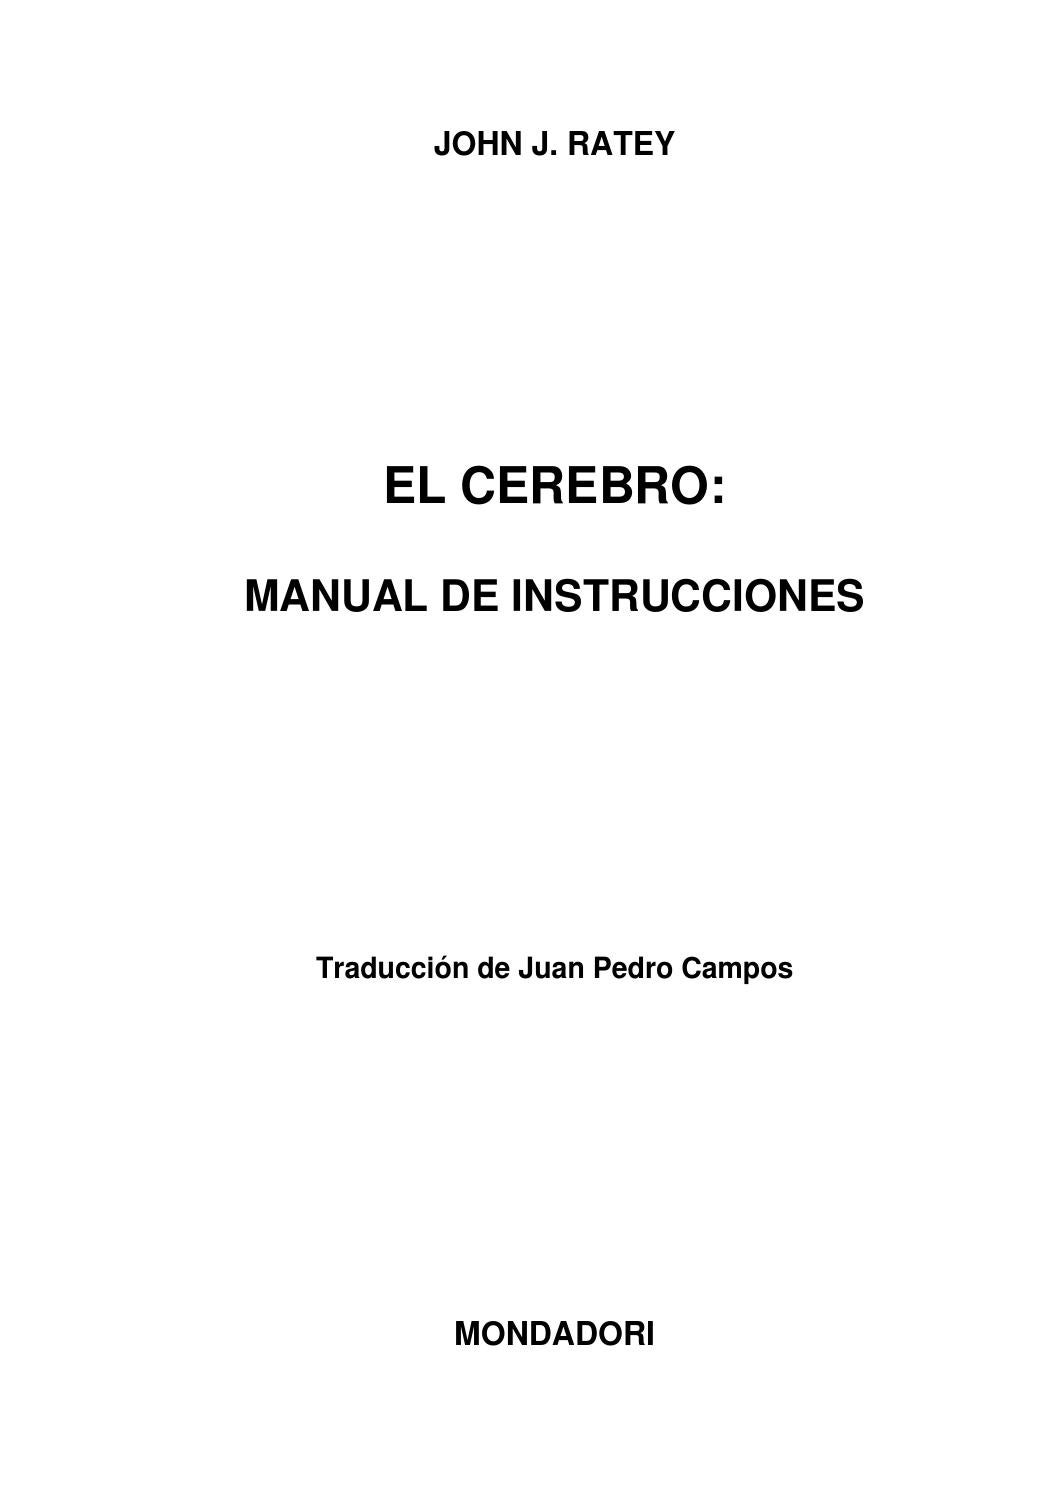 El cerebro manual de instrucciones by juanfrancoach - issuu